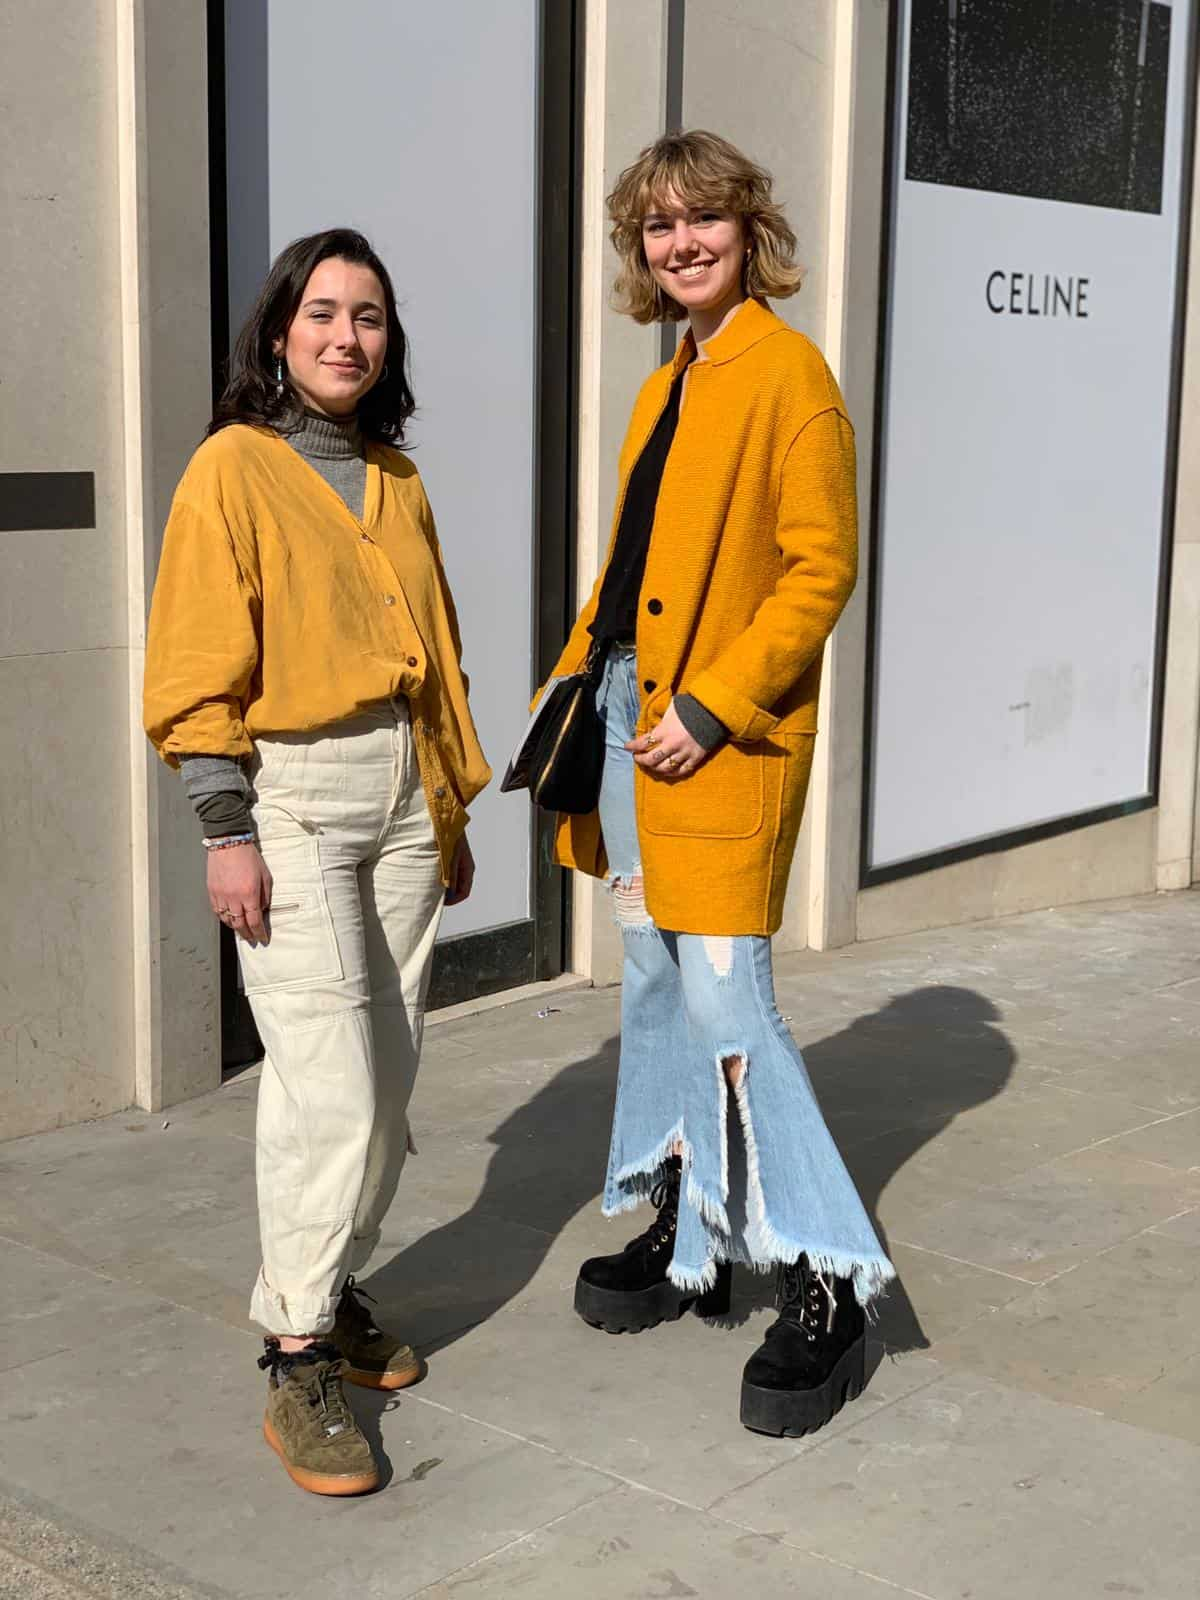 women in yellow, Bond Street, Mayfair, personal styling, Fashion Tours London